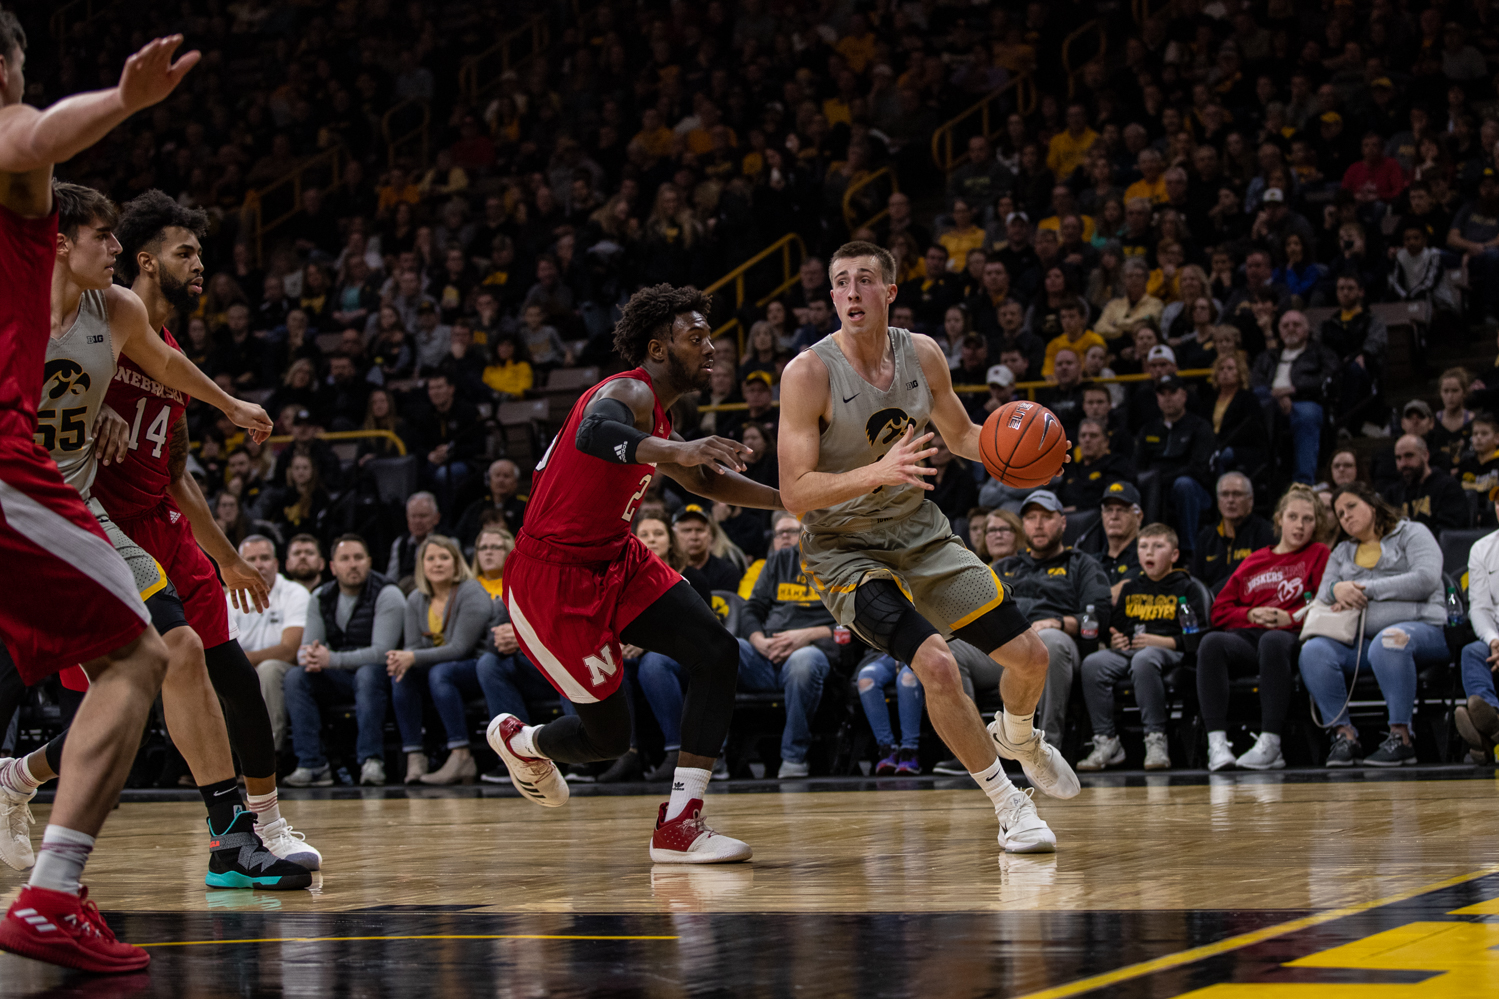 Iowa guard Joe Wieskamp dribbles the ball during Iowa's game against Nebraska at Carver-Hawkeye Arena on Sunday, January 6, 2019. The Hawkeyes defeated the Cornhuskers 93-84.